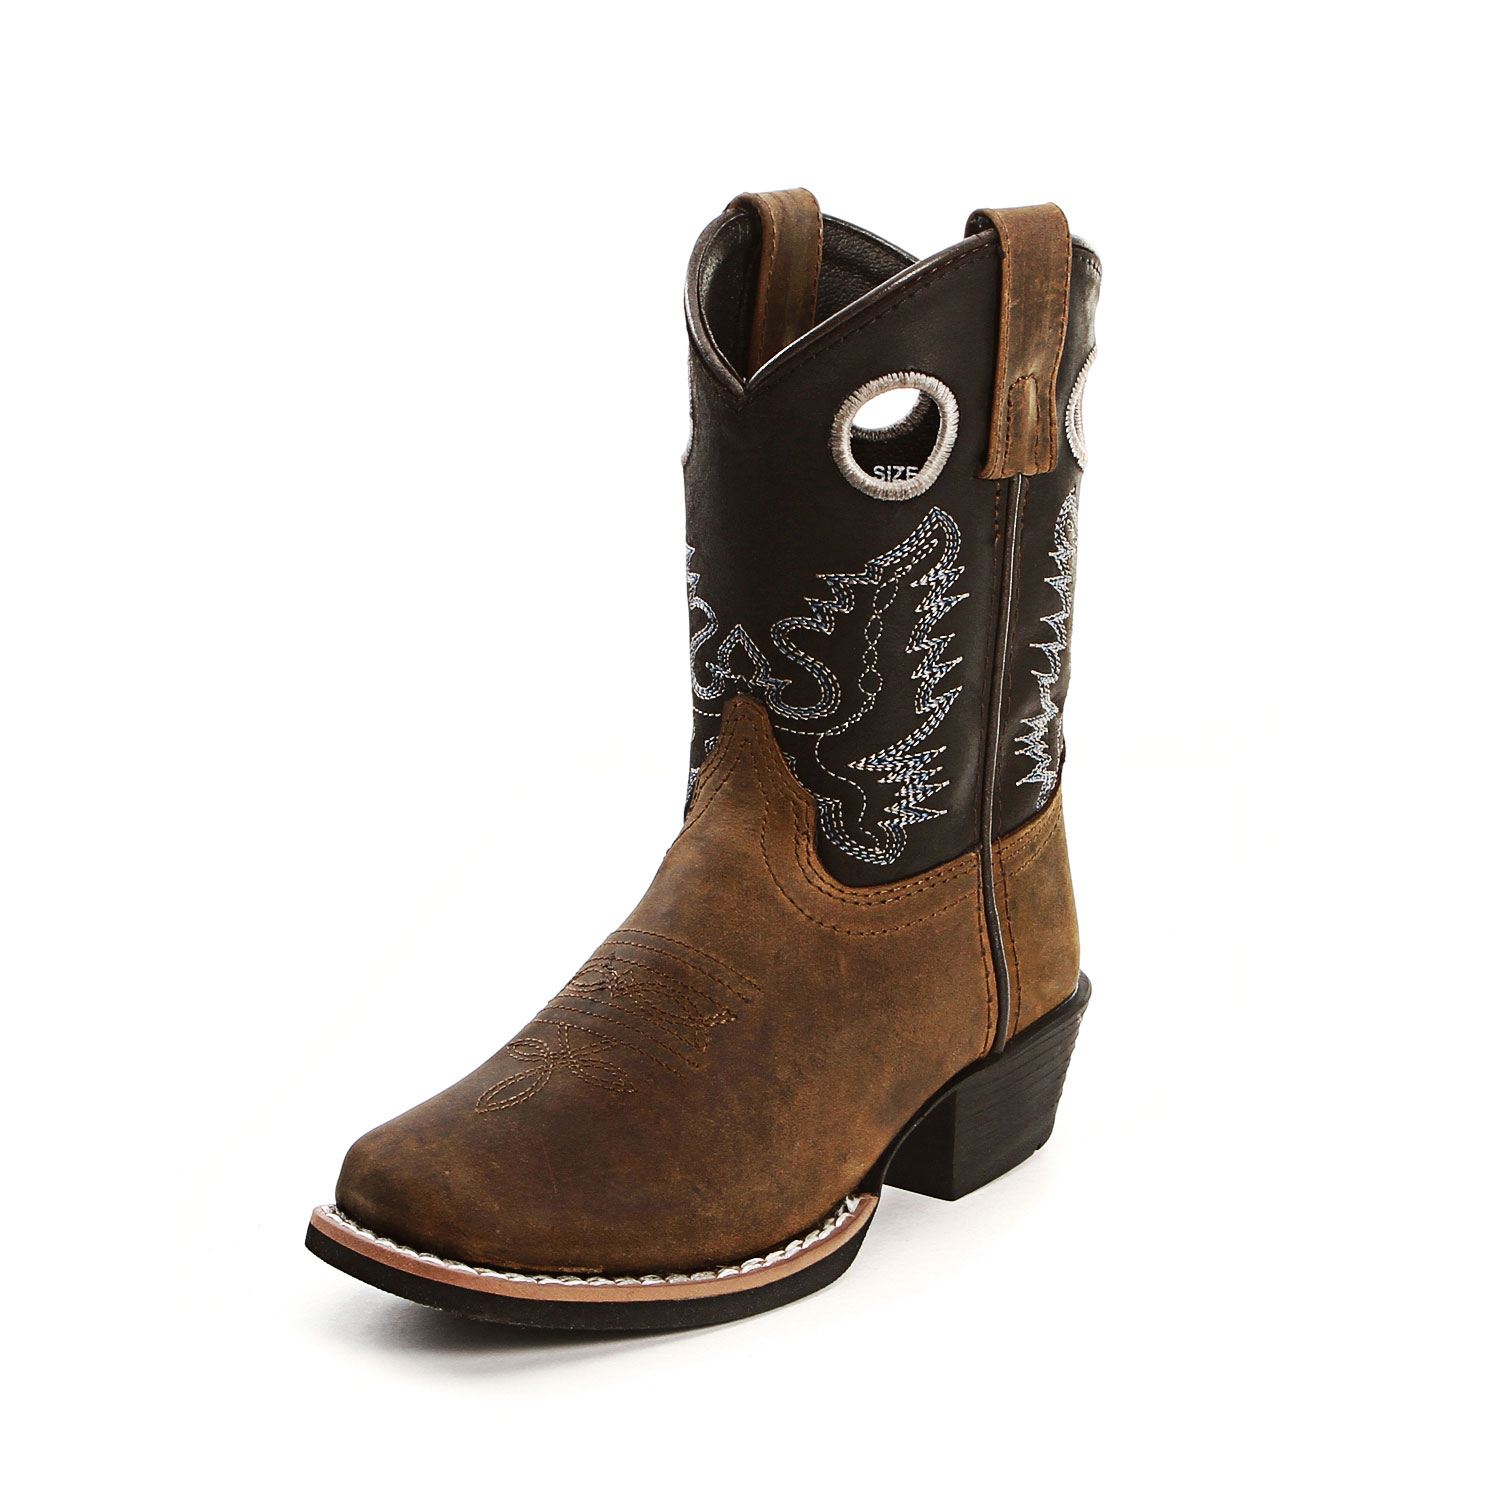 smoky mountain youth brown and black cowboy boots